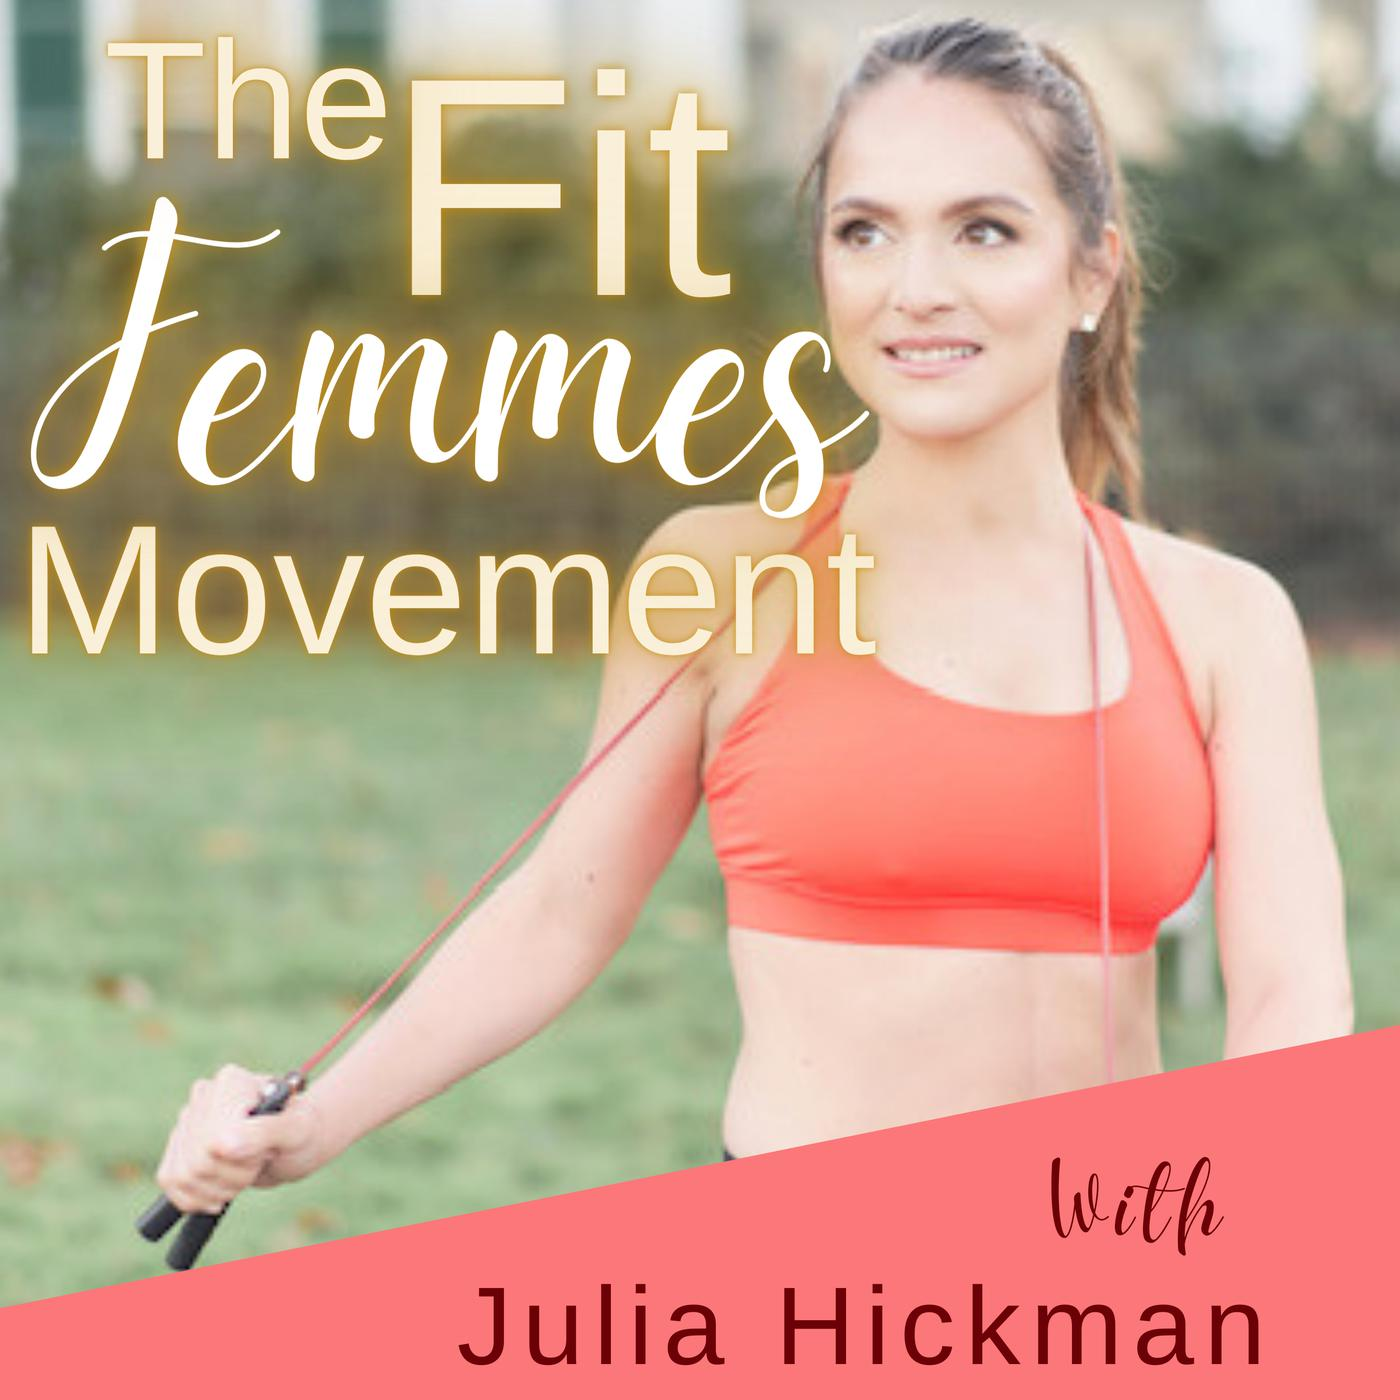 The fit femmes movement 1mnO3tVvrWf rB4Evt uM3q 1400x1400 Featured In